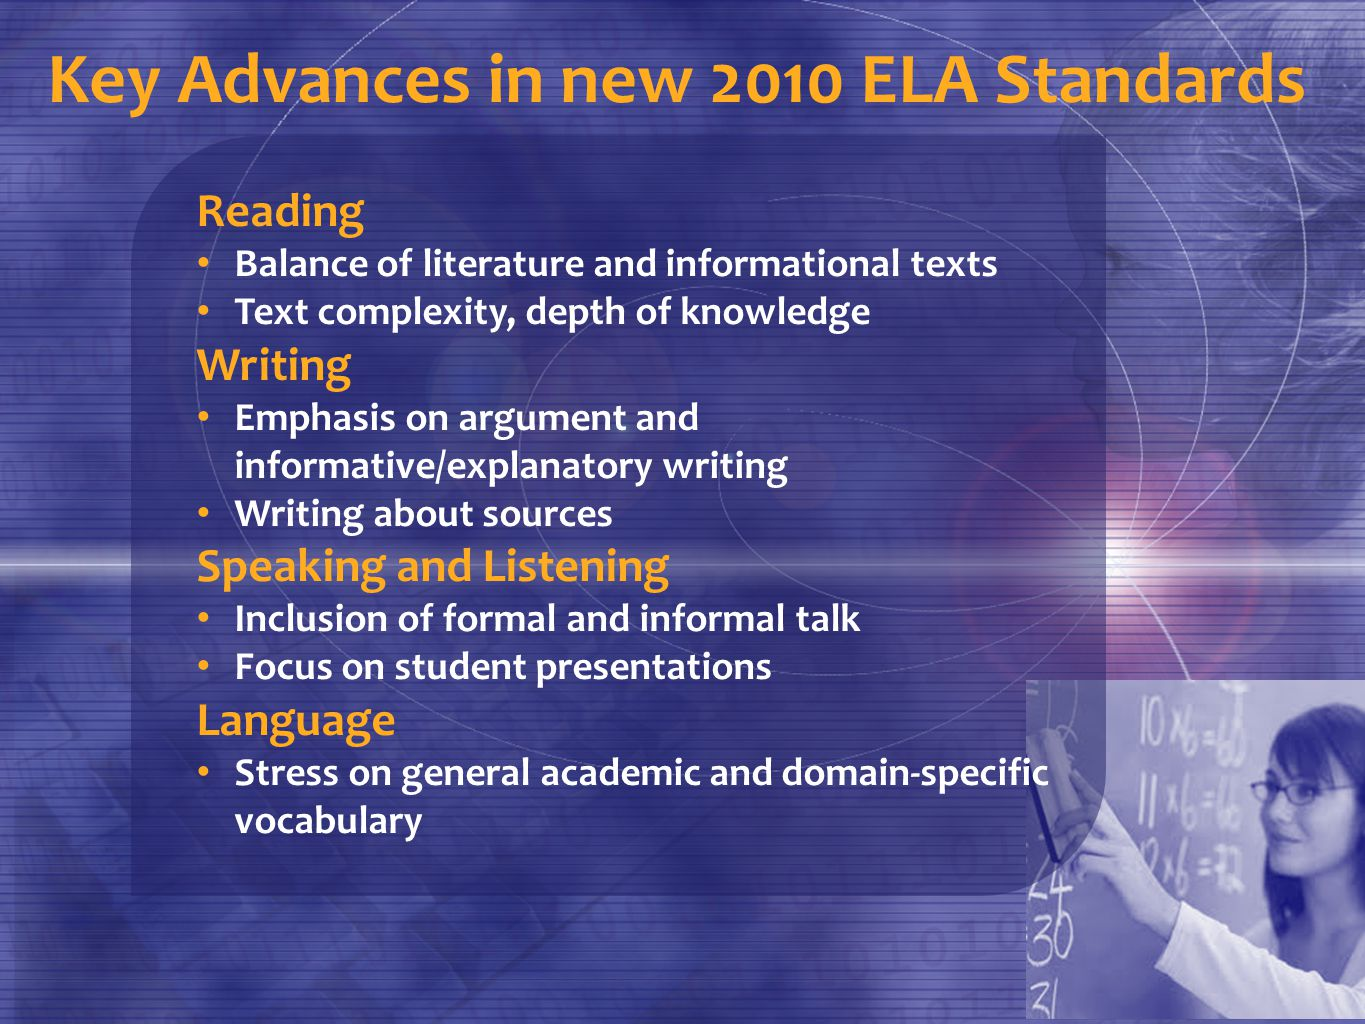 Key Advances in new 2010 ELA Standards Reading Balance of literature and informational texts Text complexity, depth of knowledge Writing Emphasis on argument and informative/explanatory writing Writing about sources Speaking and Listening Inclusion of formal and informal talk Focus on student presentations Language Stress on general academic and domain-specific vocabulary